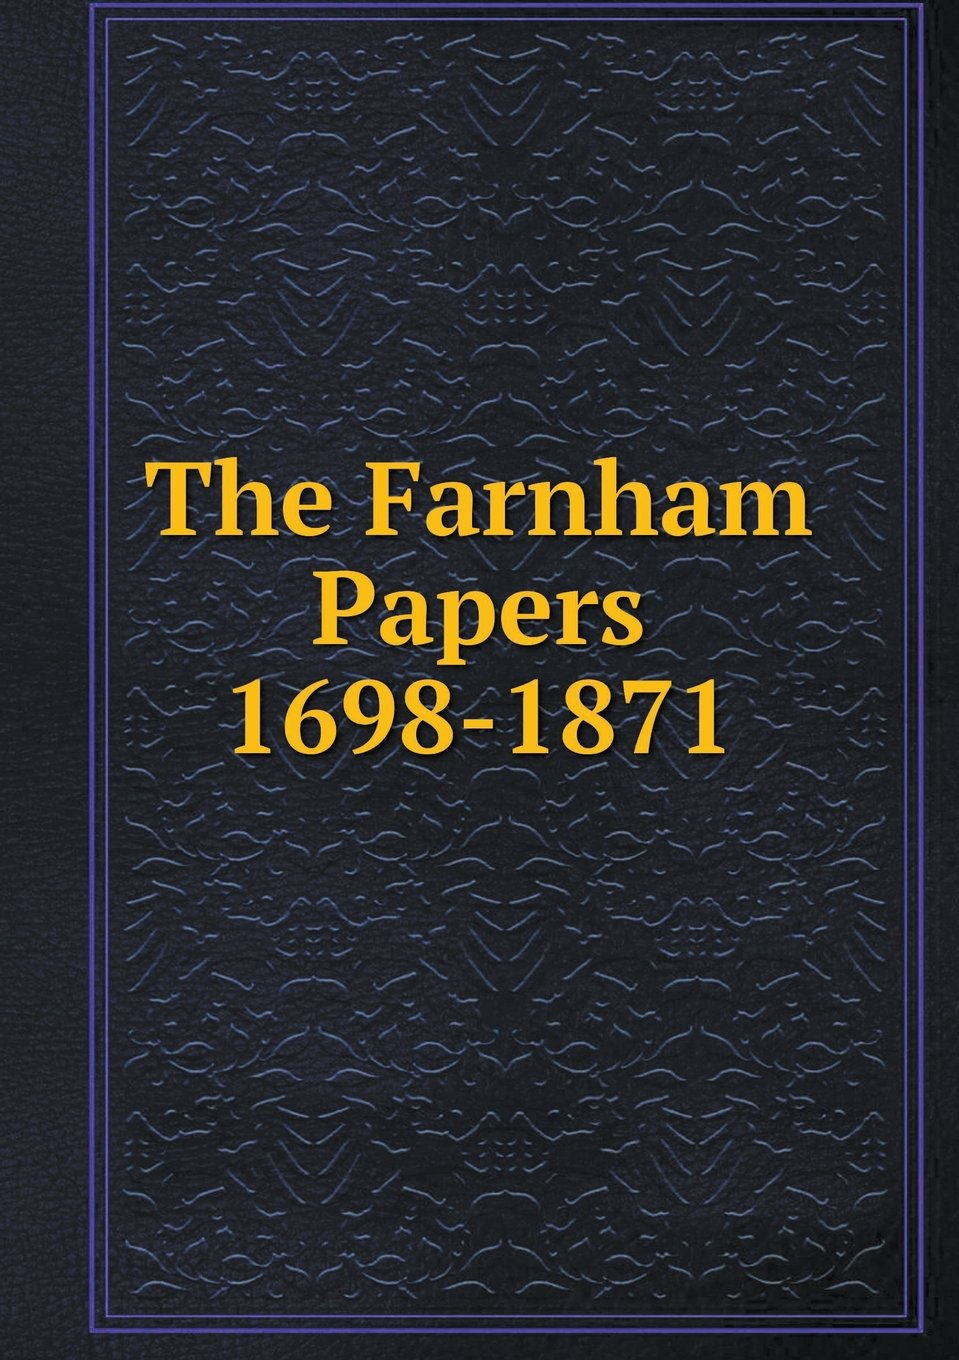 Download The Farnham Papers 1698-1871 pdf